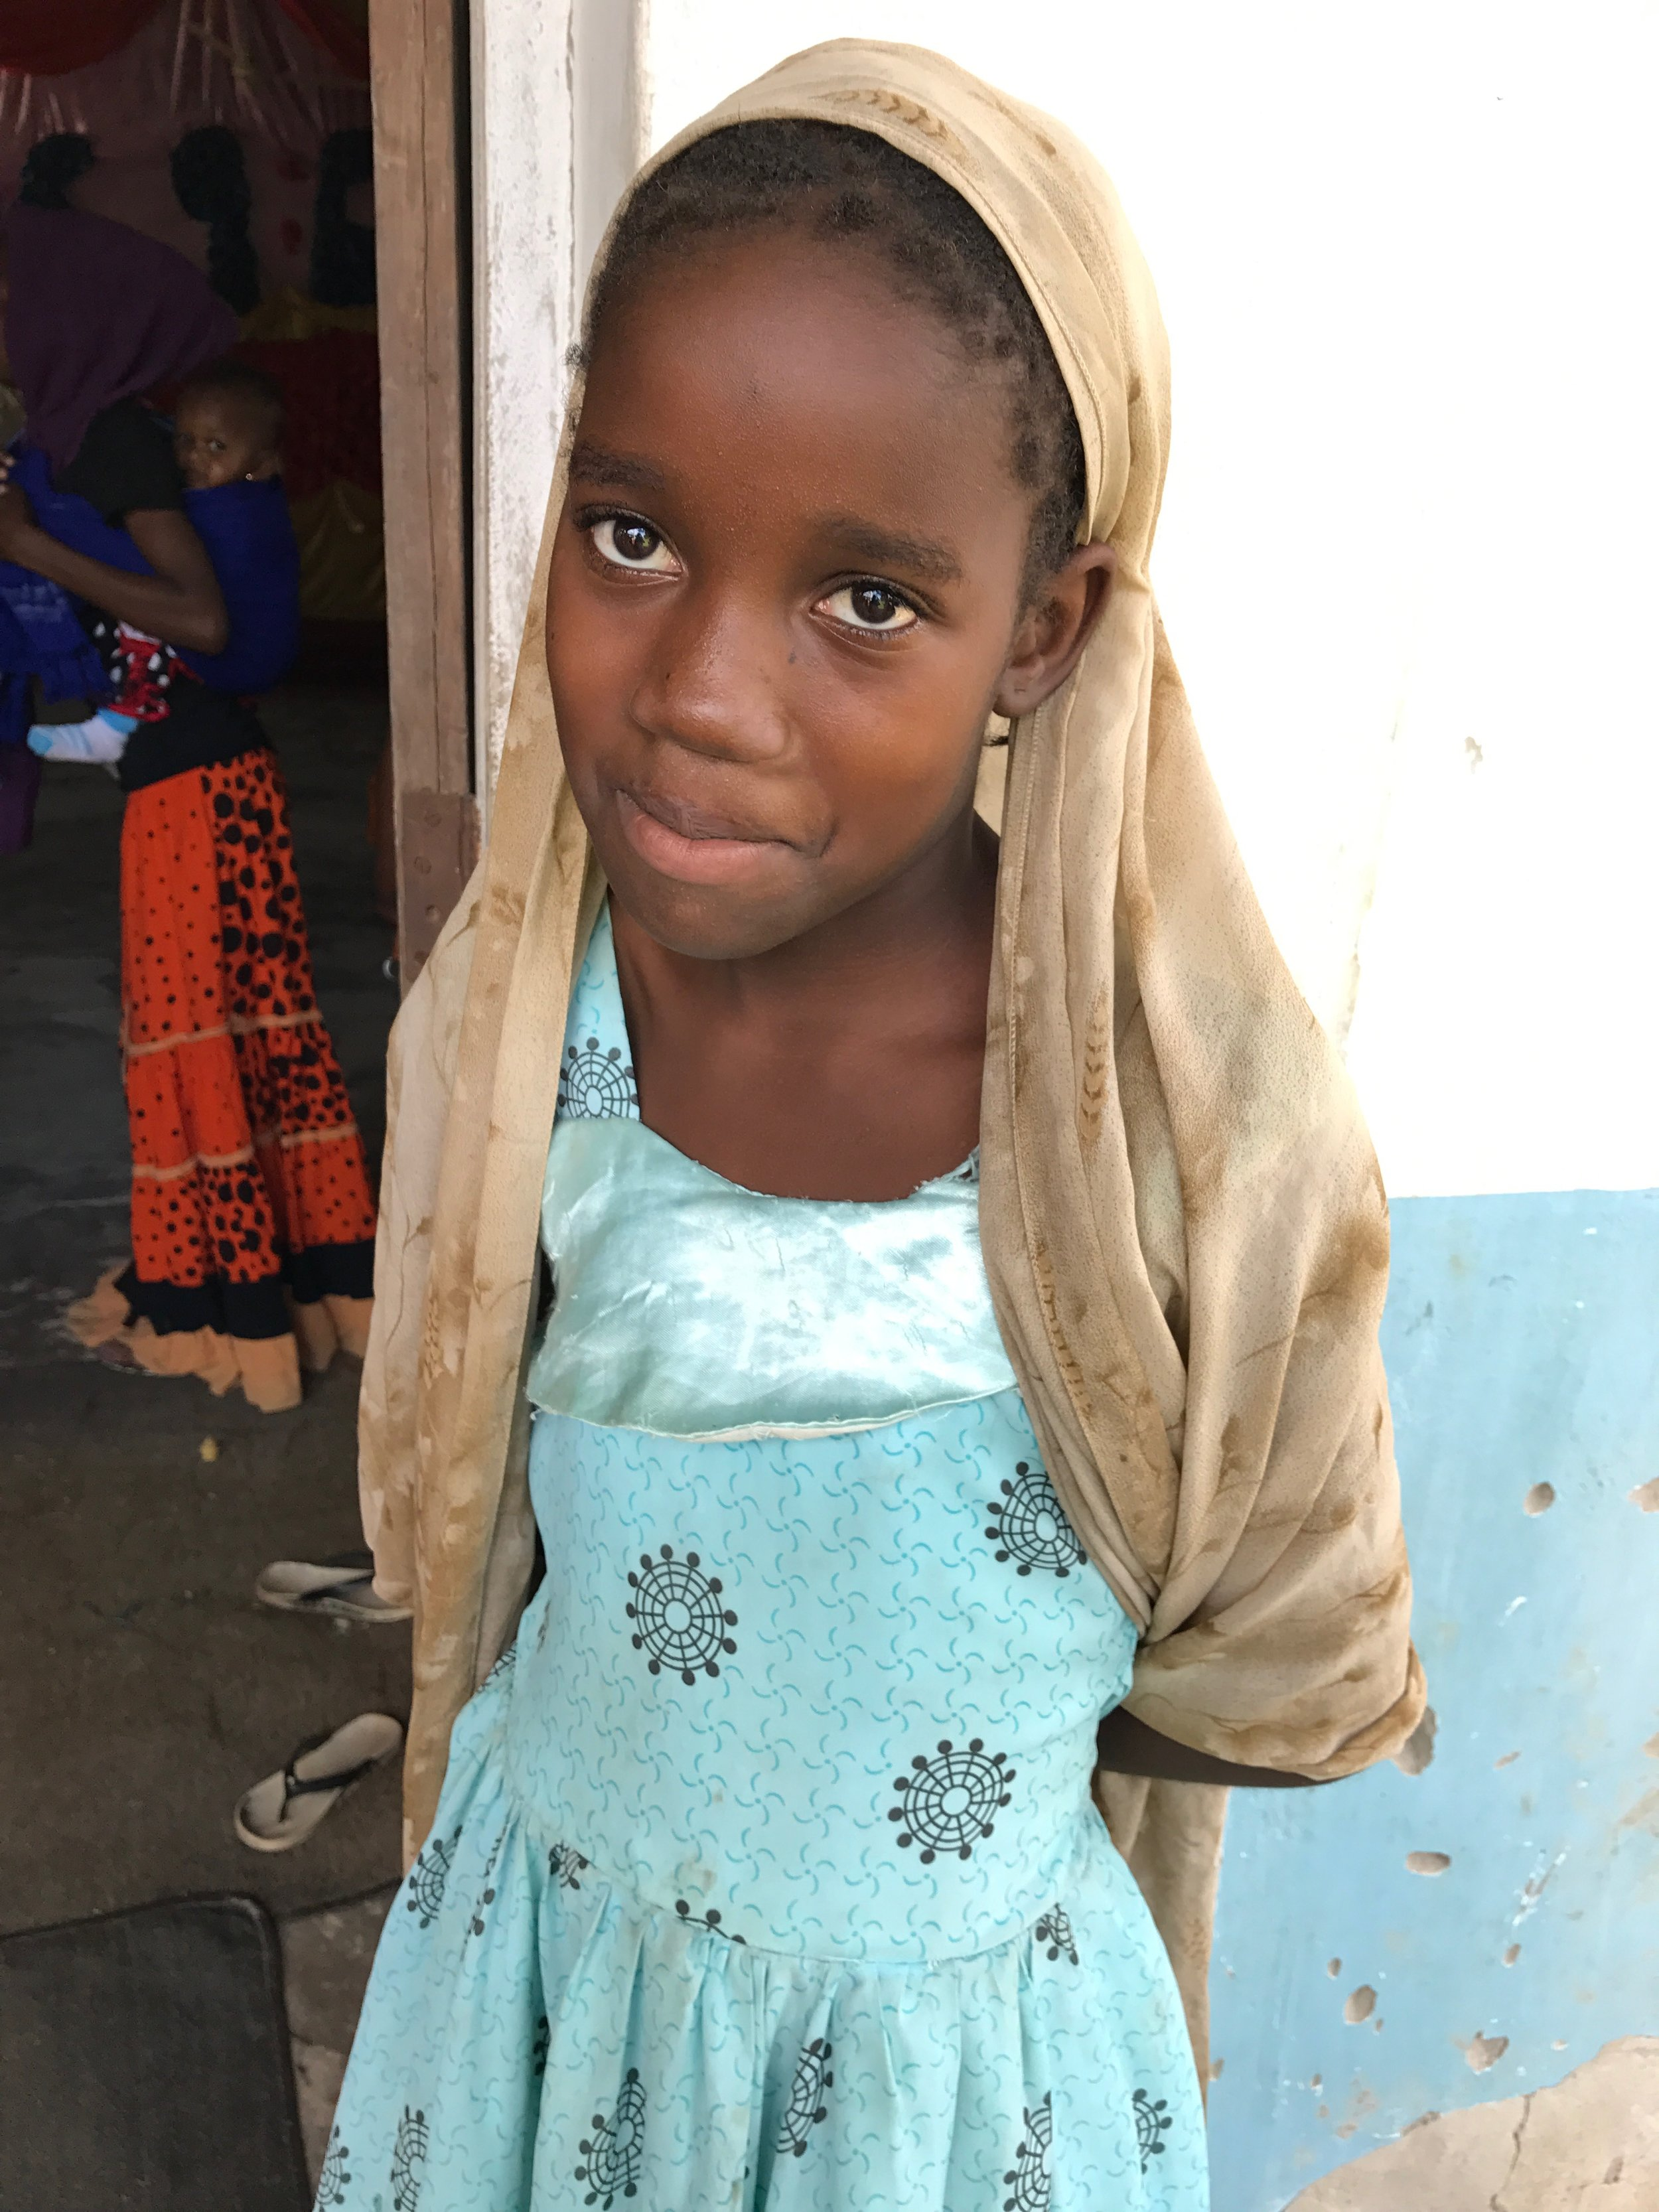 This village girl and her family now enjoy clean water every day